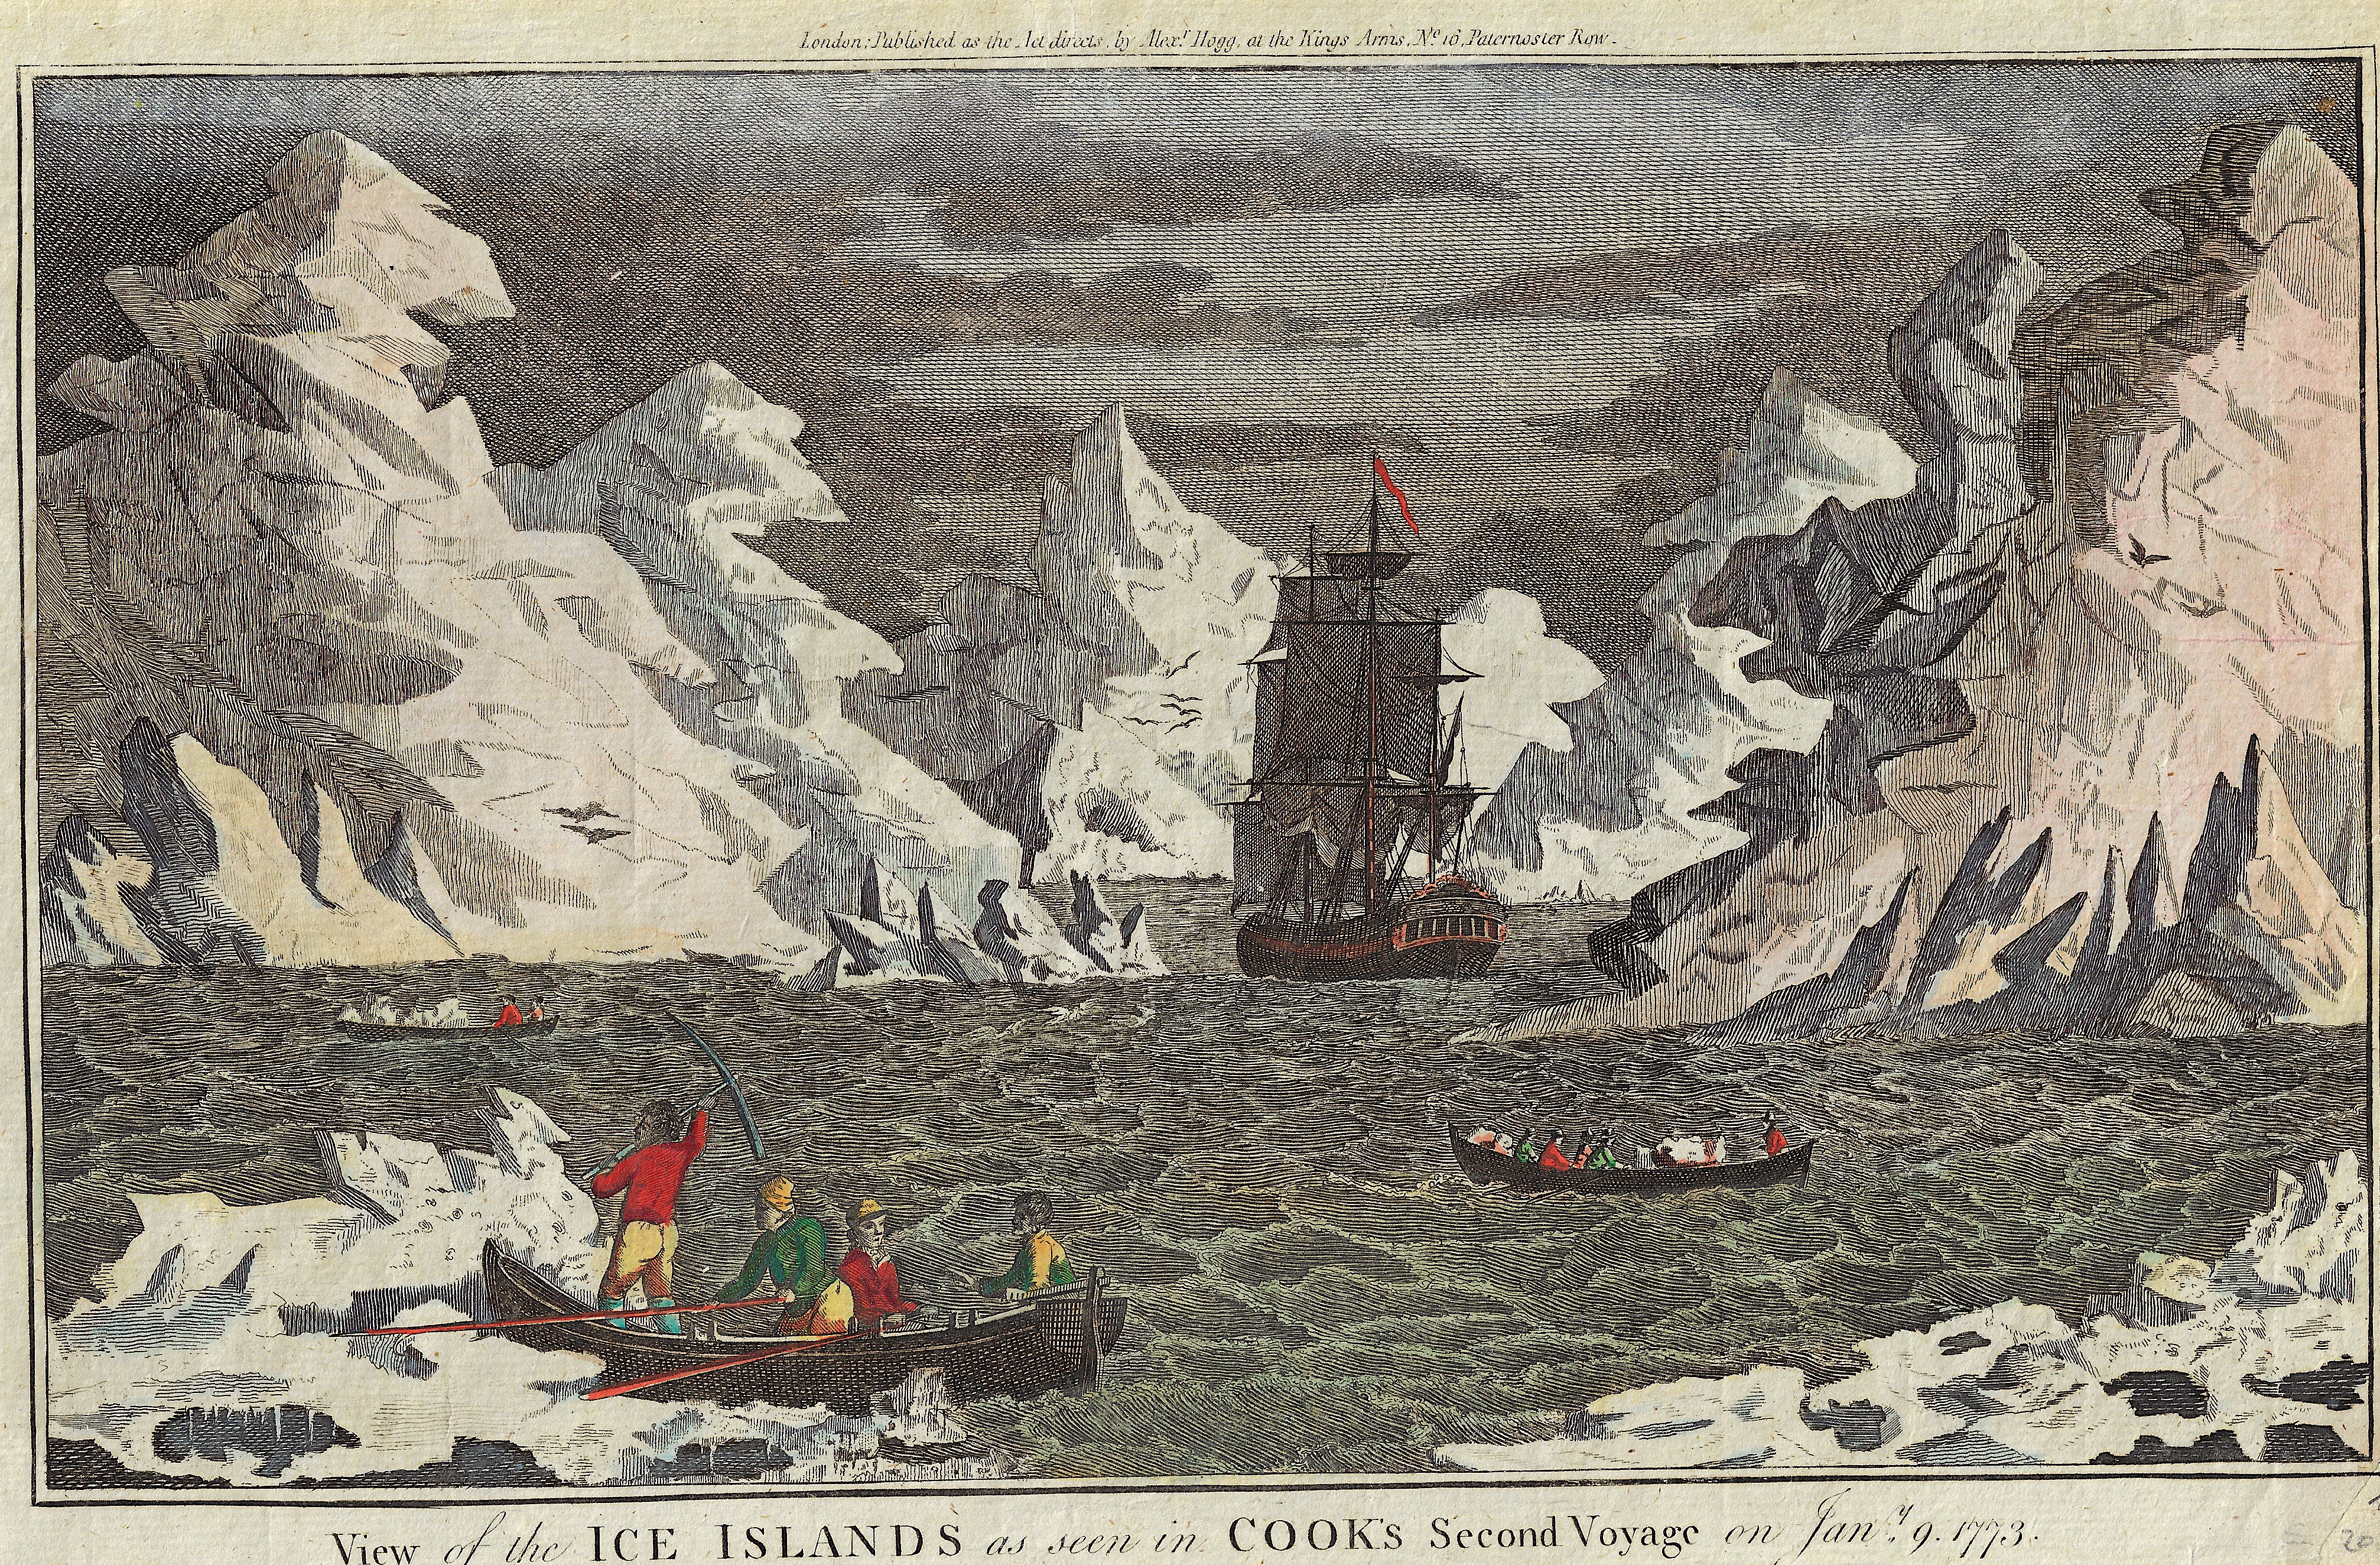 Hogg Alexander View of the Ice Islands as seen in Cook's Second Voyage on Jan. 9. 1773.